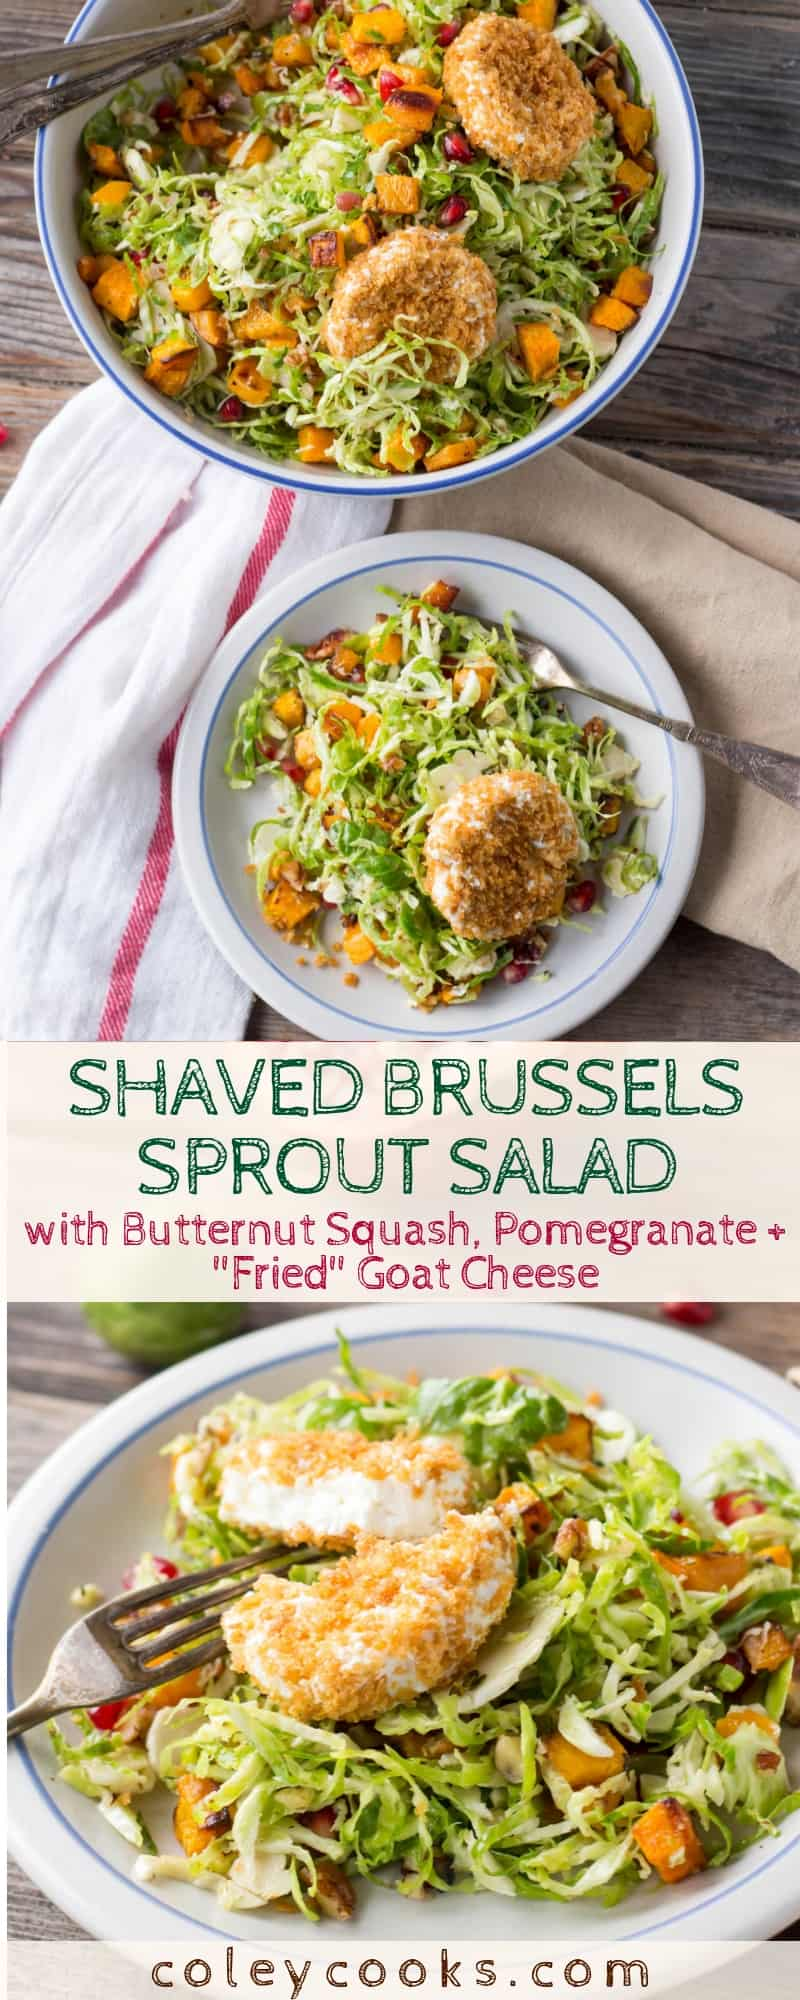 """Shaved Brussels Sprout Salad with Butternut Squash, Pomegranate + """"Fried"""" Goat Cheese 